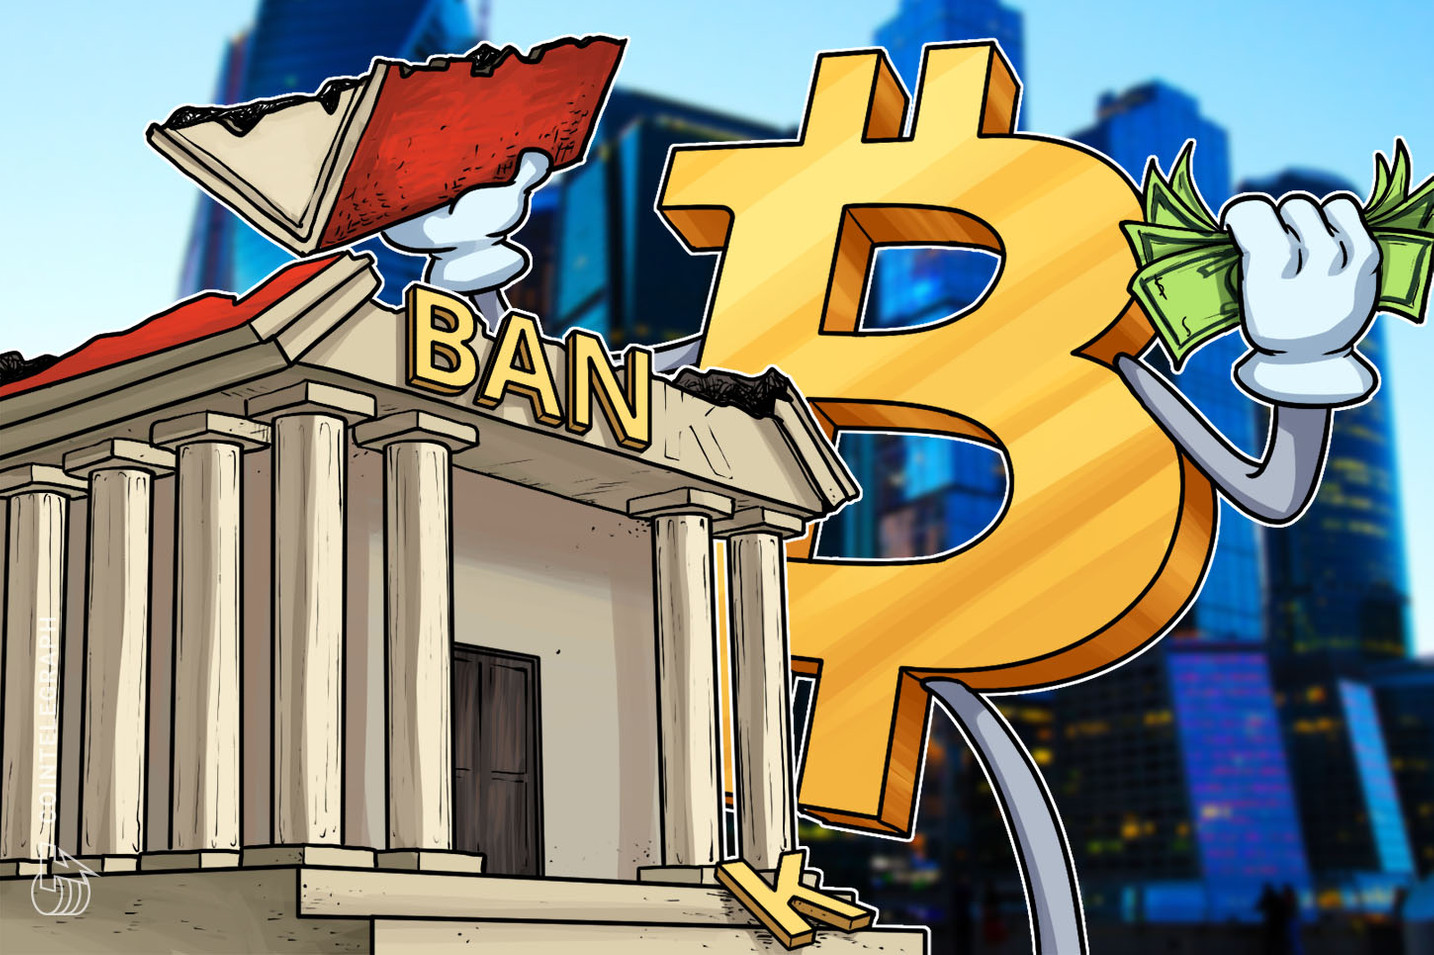 Survey Respondents Are Split 50/50 Between Bitcoin & Big Banks